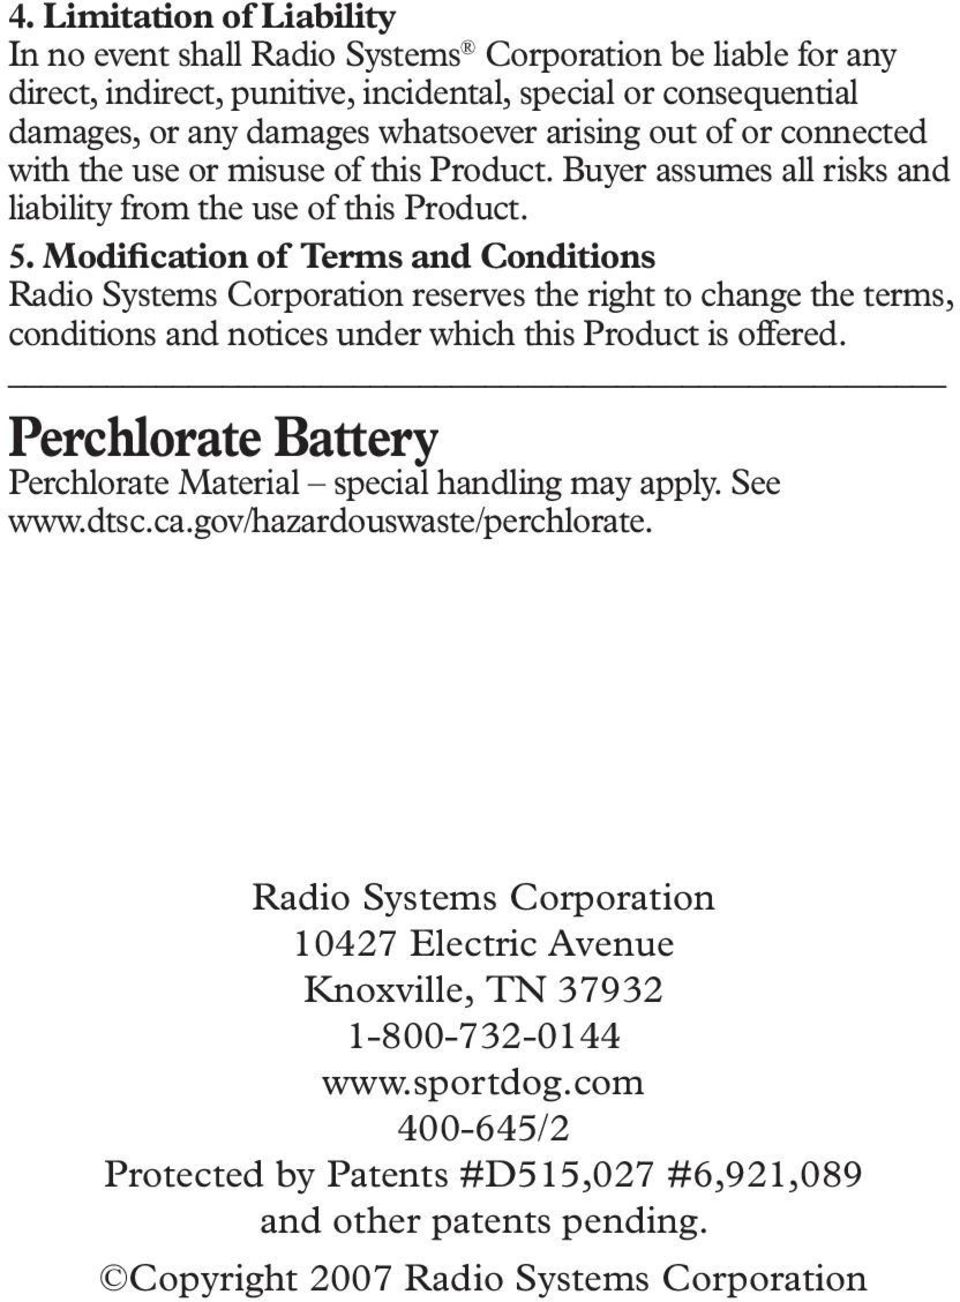 Modification of Terms and Conditions Radio Systems Corporation reserves the right to change the terms, conditions and notices under which this Product is offered.